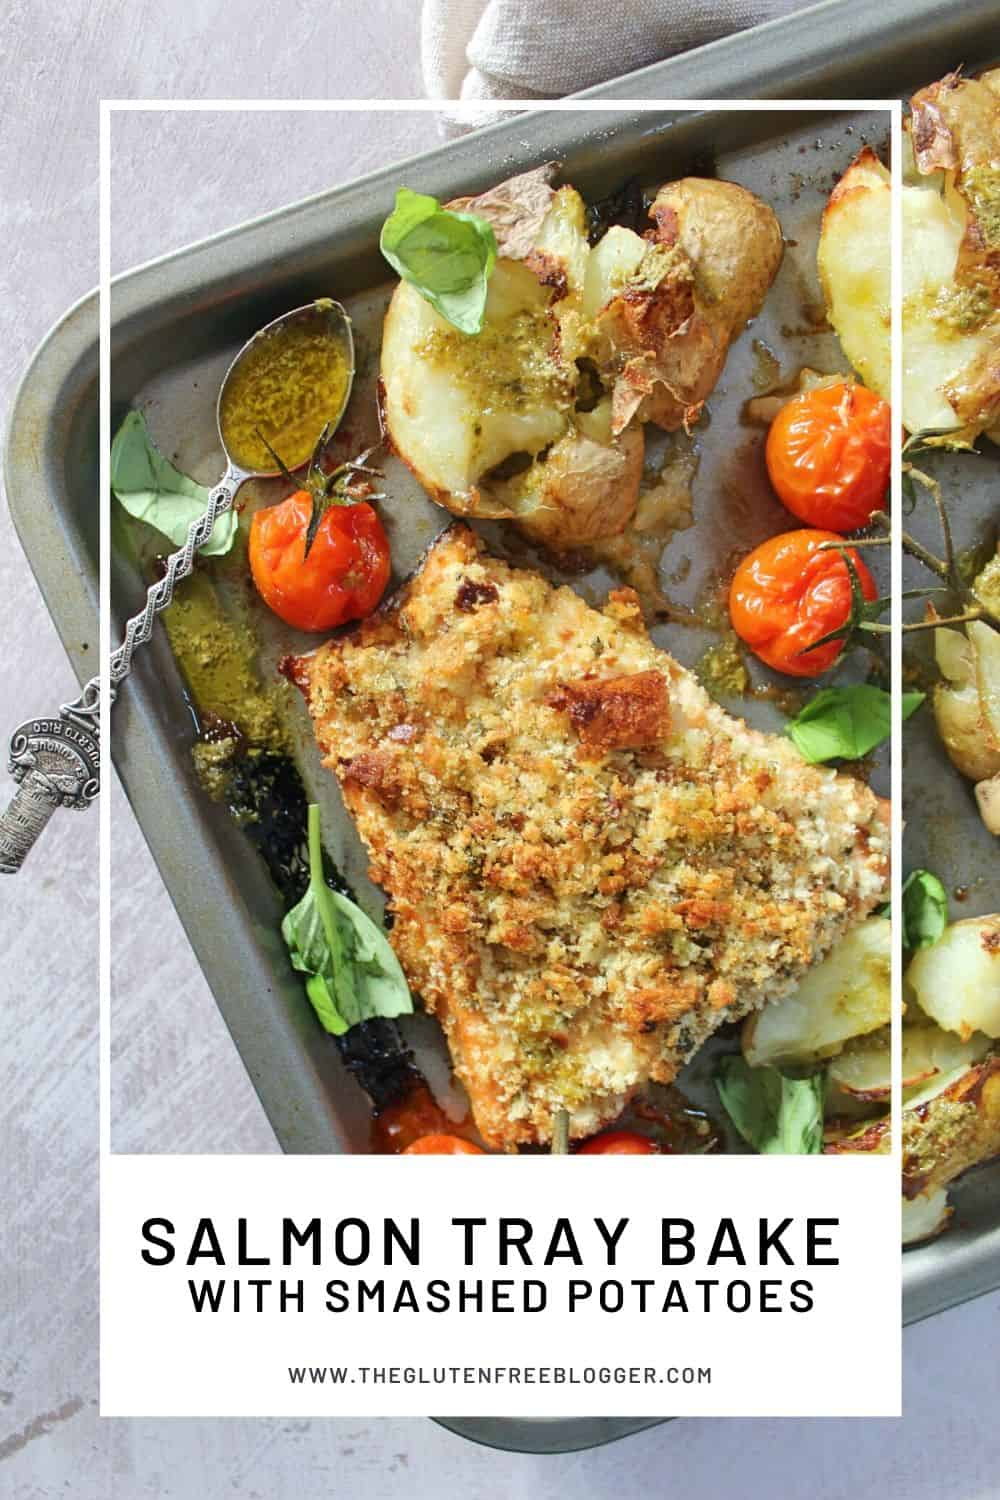 gluten free herb crusted salmon tray bake with smashed potatoes and pesto drizzle healthy one pan dinner recipe